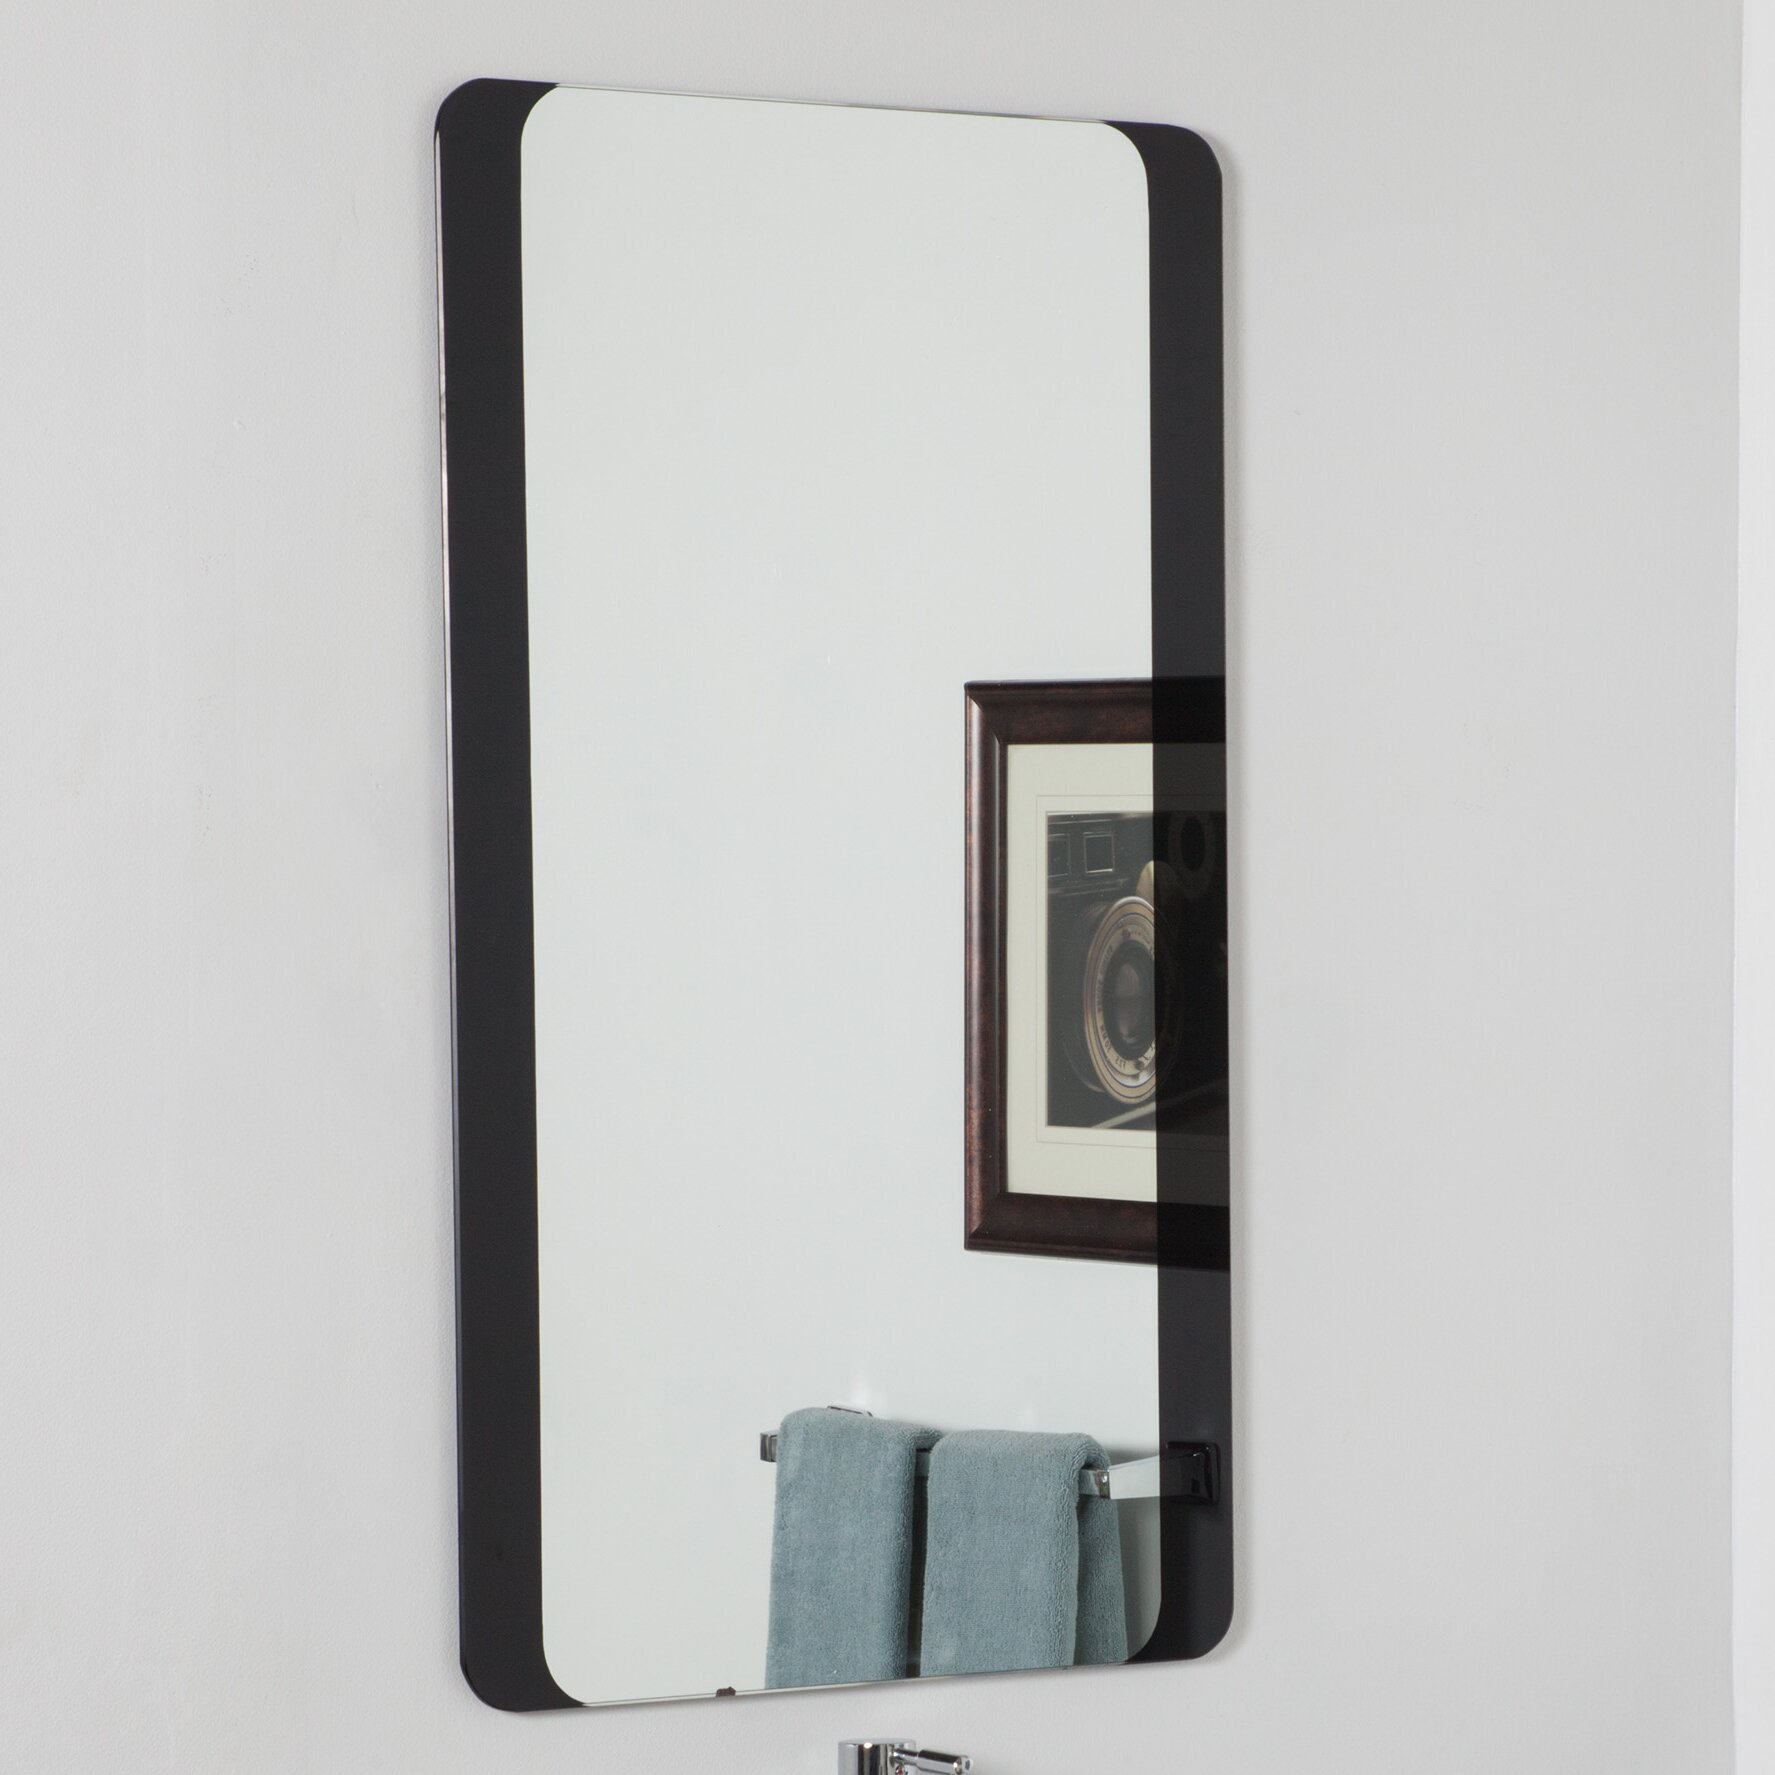 Decor wonderland large wall mirror reviews wayfair for Wall mirrors for bedrooms